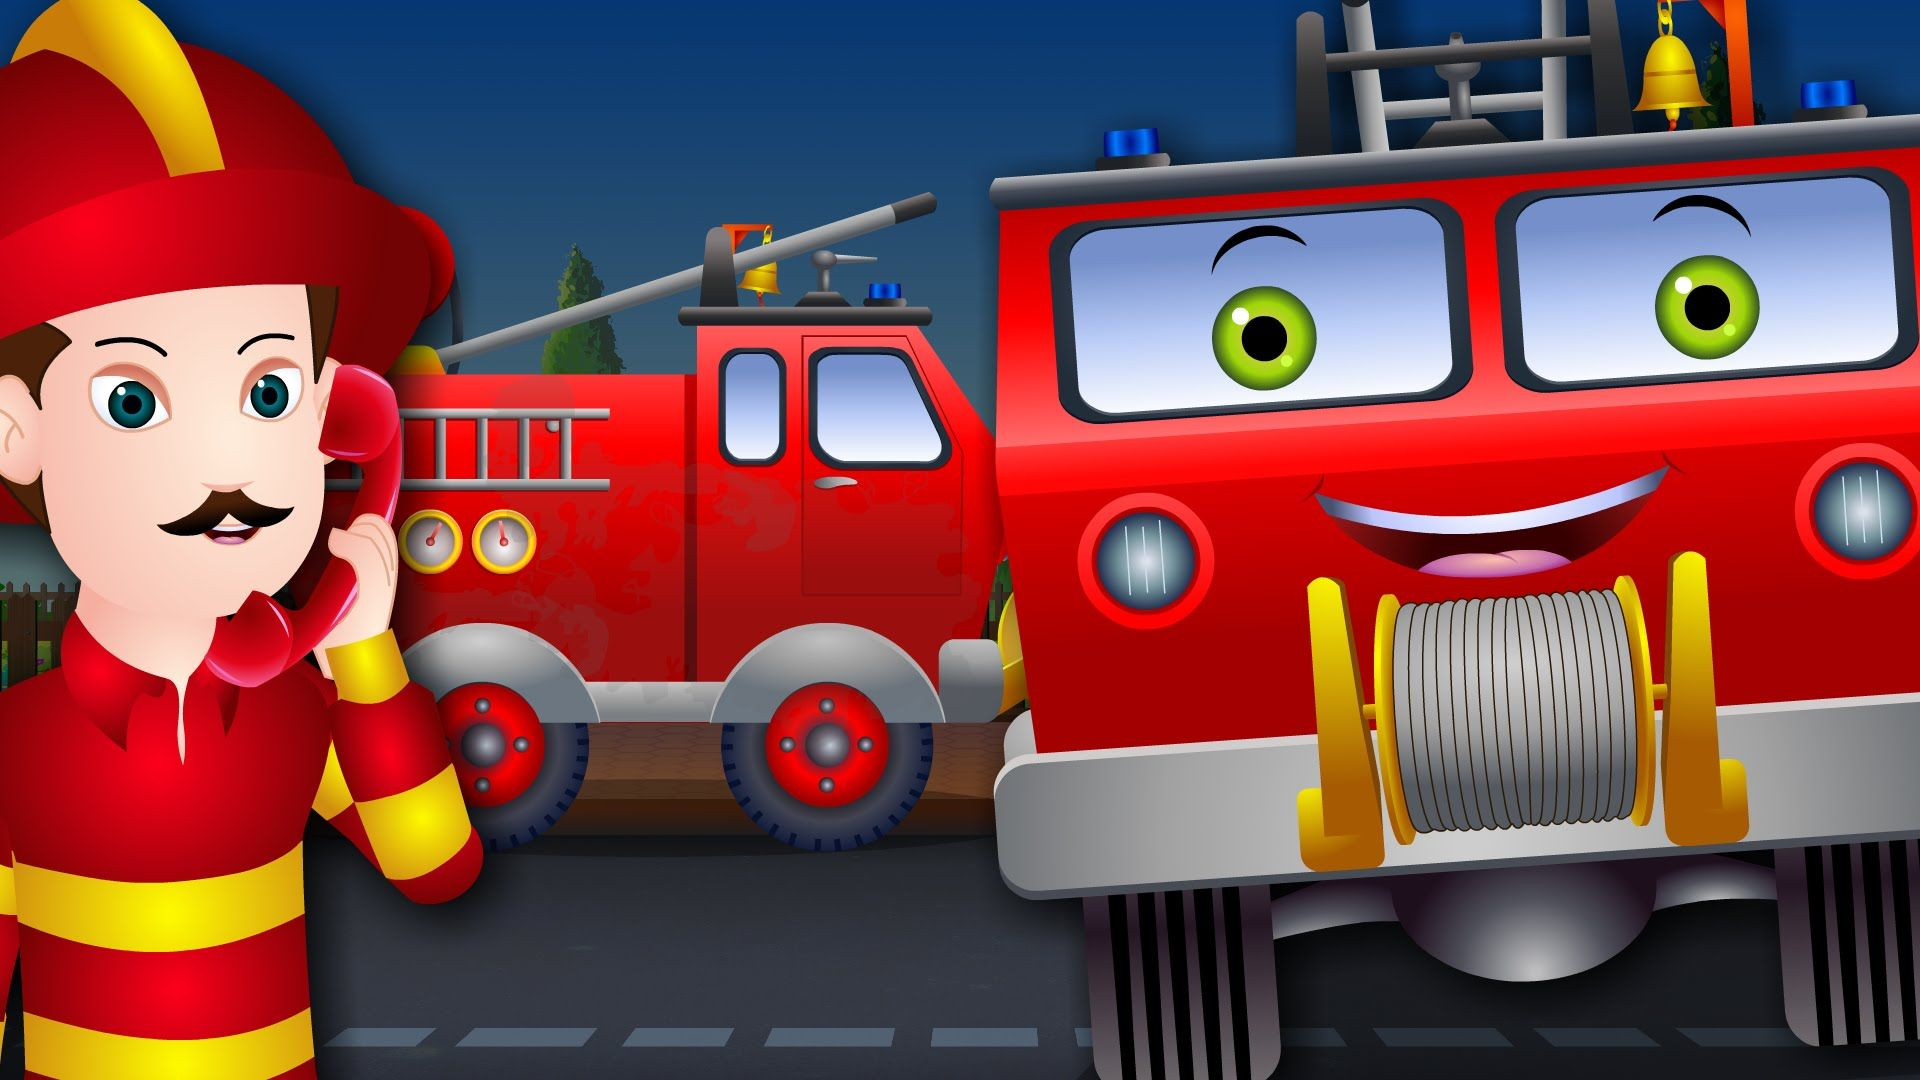 500d62b9249a7c0061e7fb0d1cf15838 Interesting Info About Cartoon Car Engine with Amazing Images Cars Review